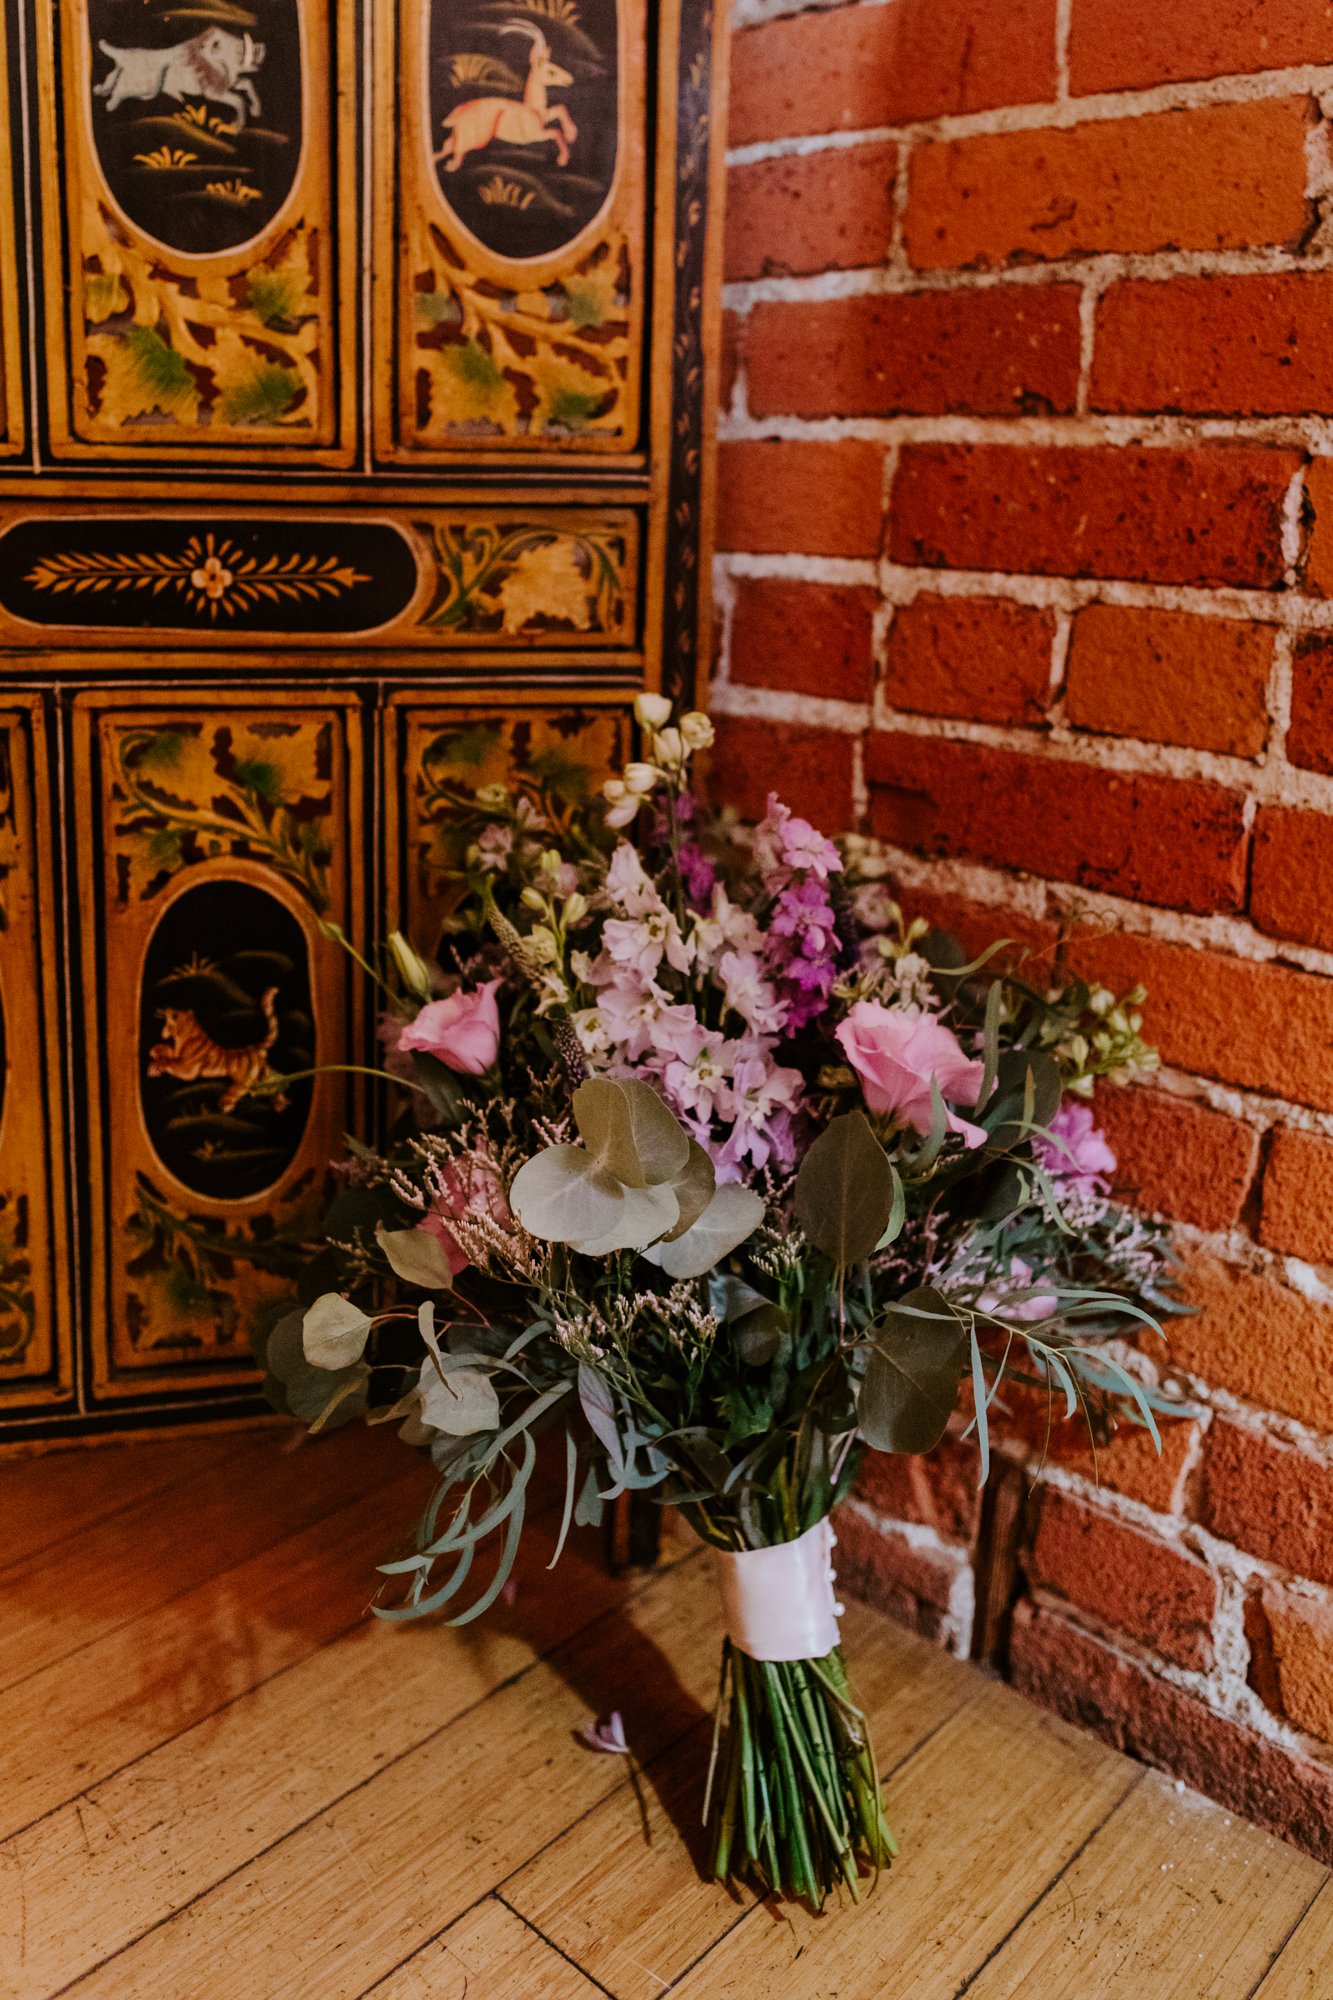 Rustic wildflower bouquet | Carondelet House Wedding in Downtown Los Angeles | Los Angeles Wedding Photographer |Tida Svy Photography | www.tidasvy.com